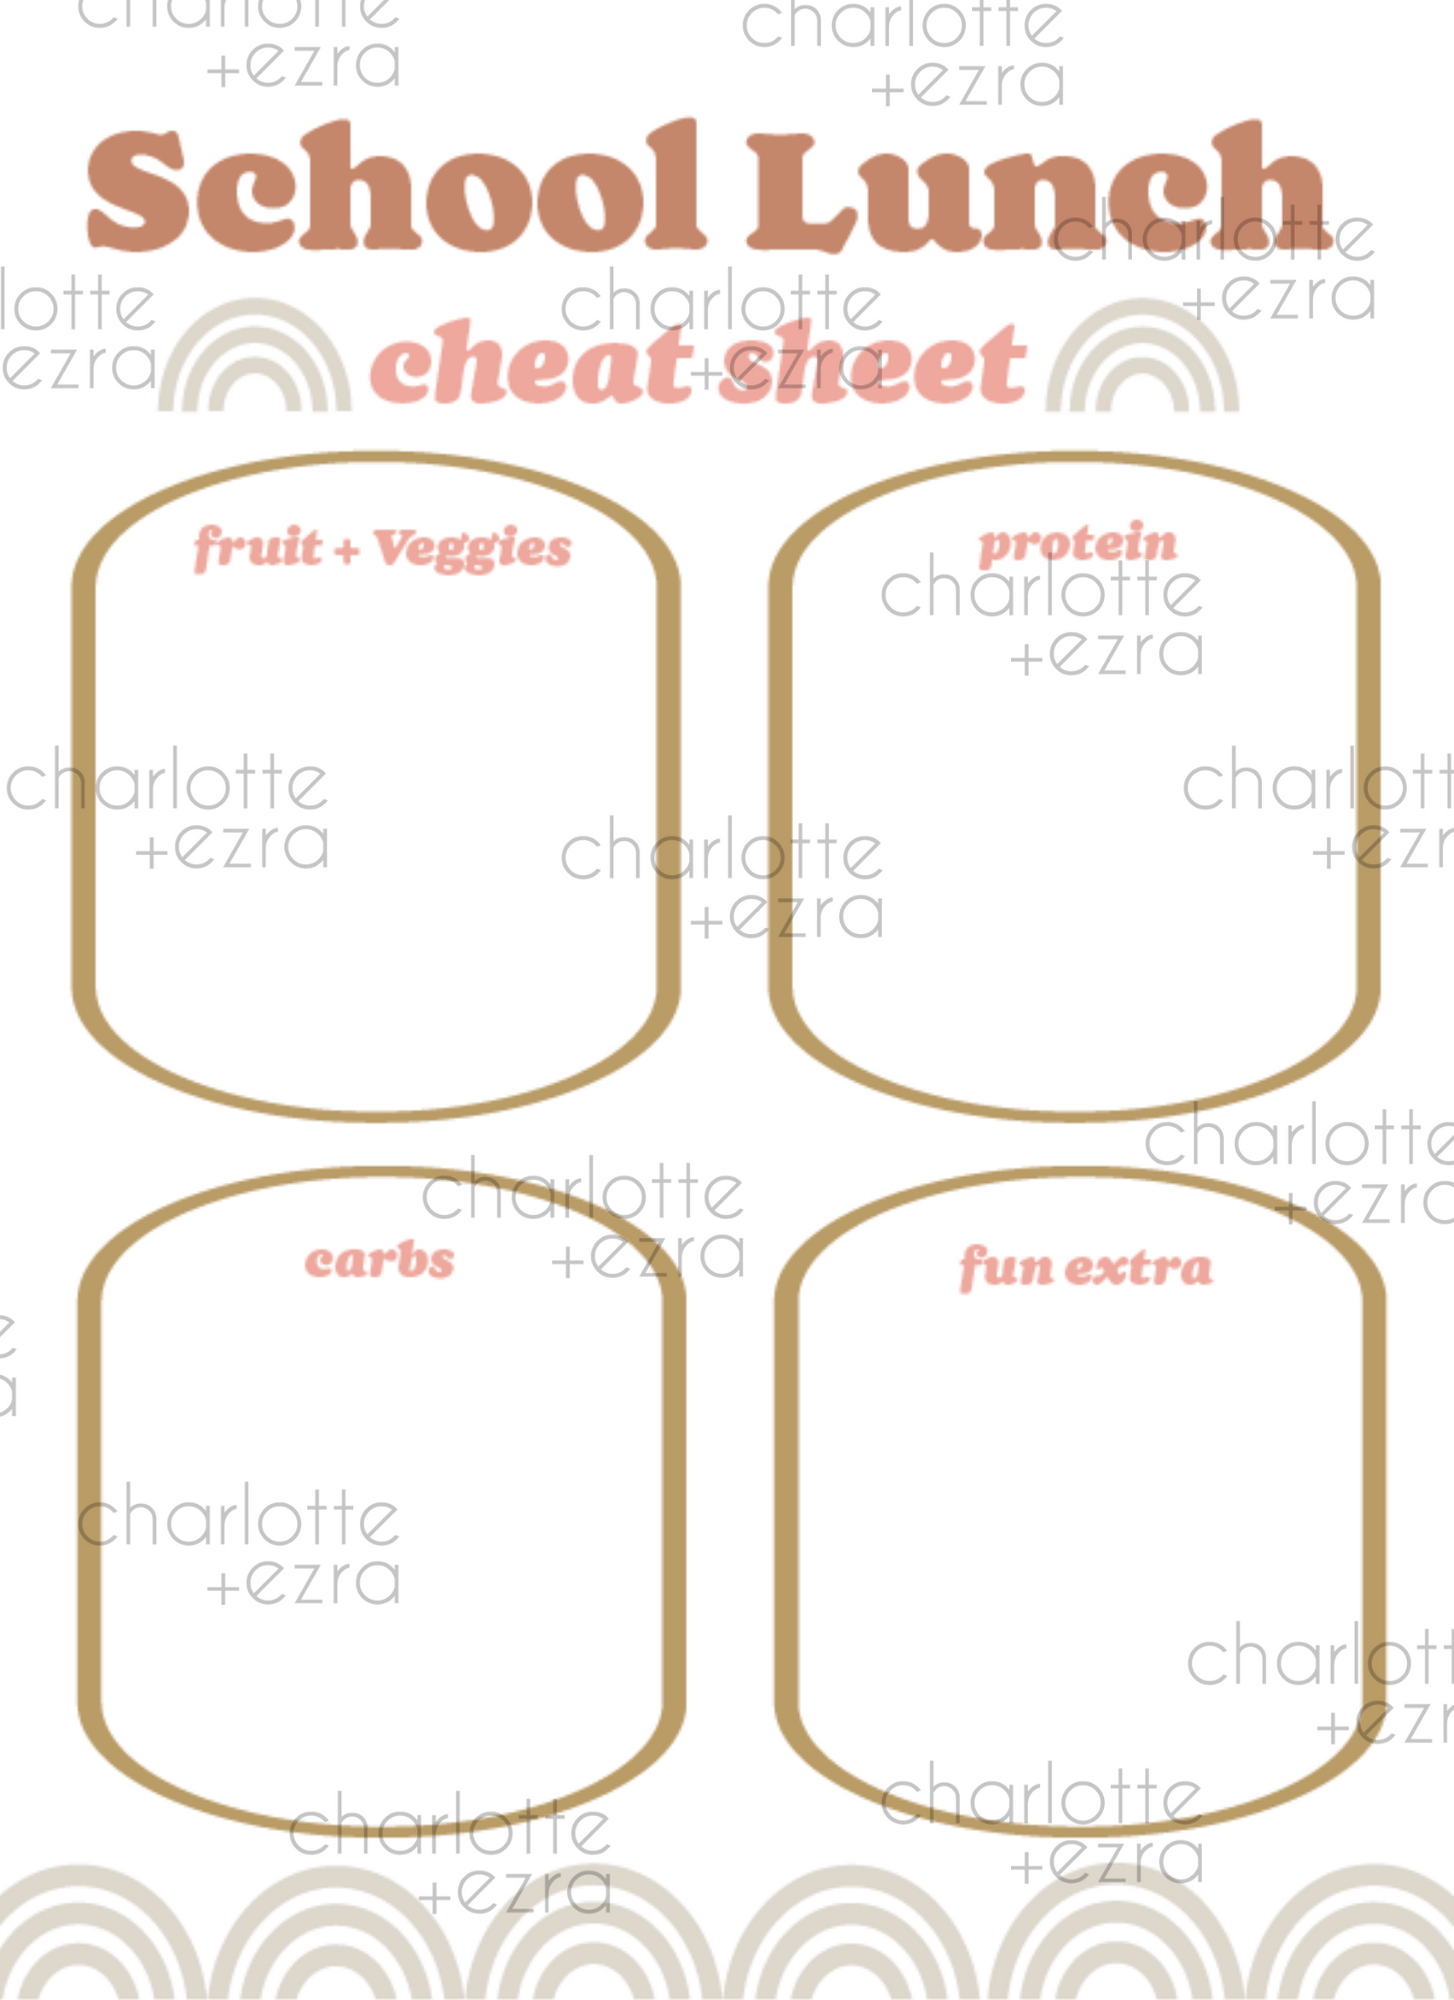 School Lunch Cheat Sheet